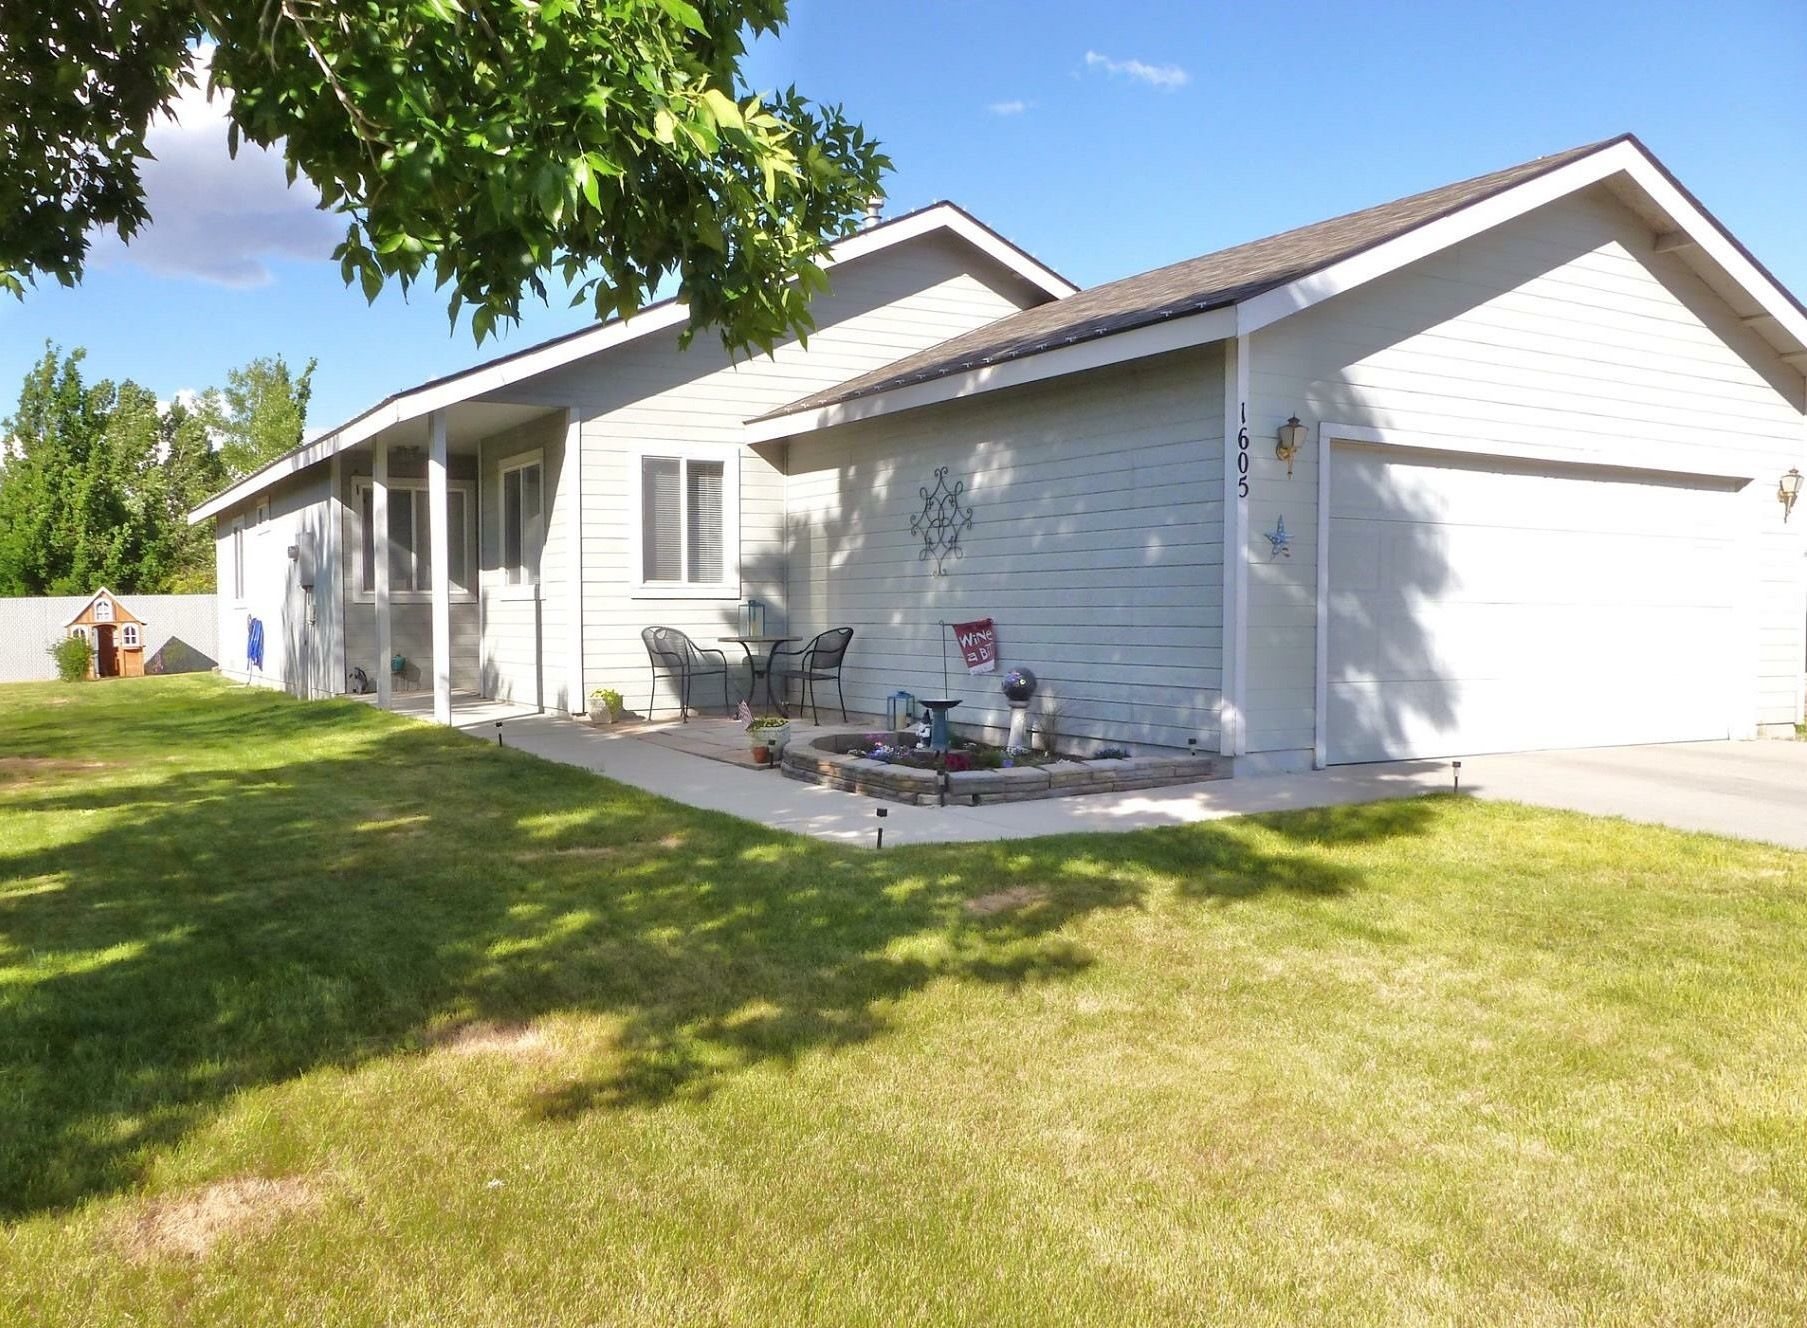 1605 stitzel rd for sale elko nv